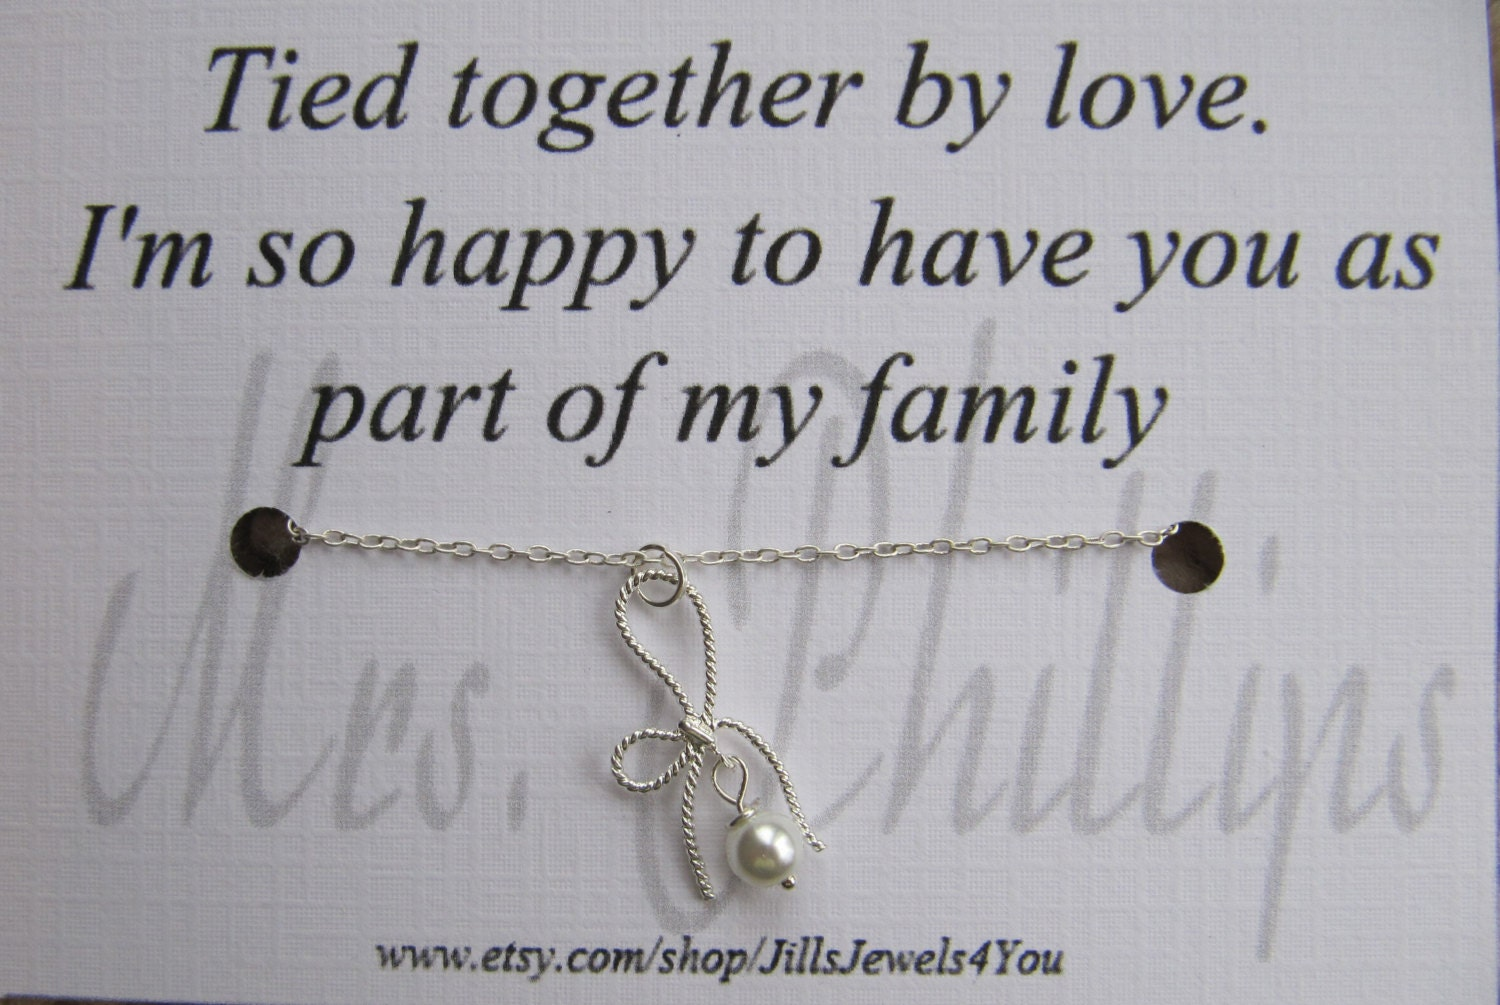 ... Card- Step Daughter Gift - tied together by love - Personalized Gift